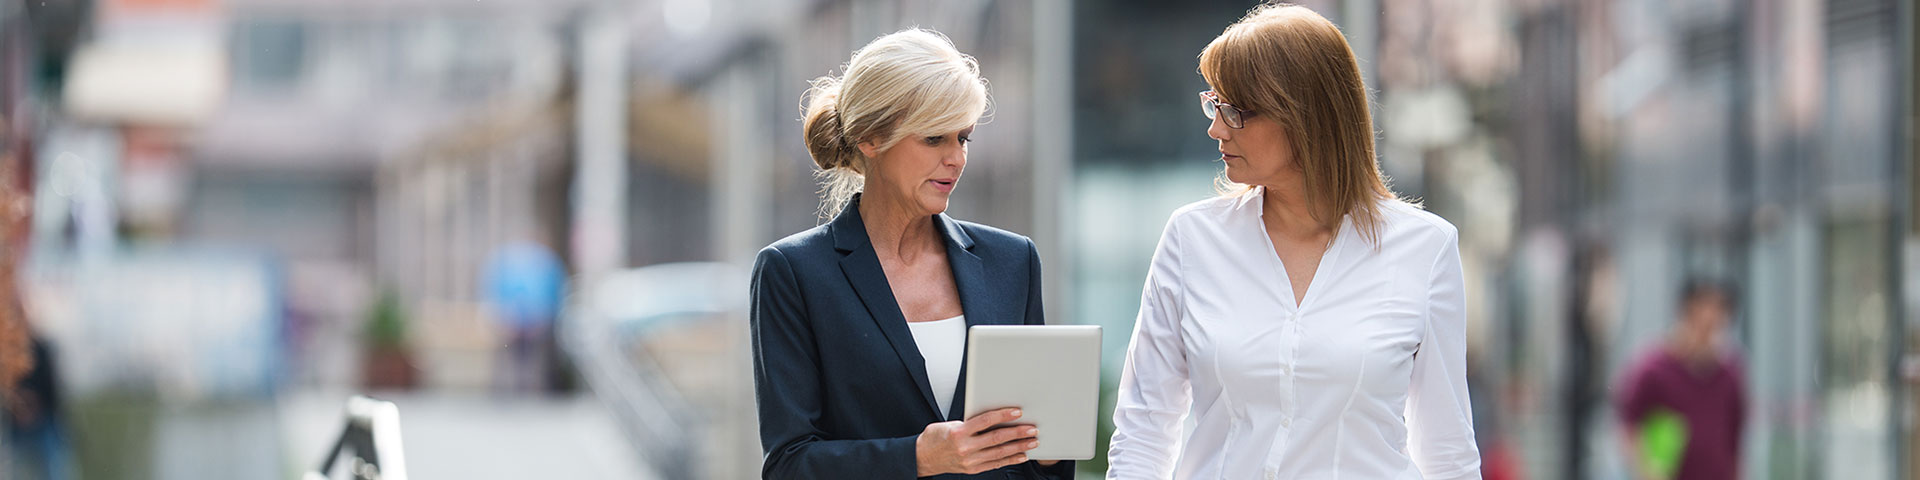 womens-leadership-experience-2-business-women-looking-at-ipad-center-for-creative-leadership